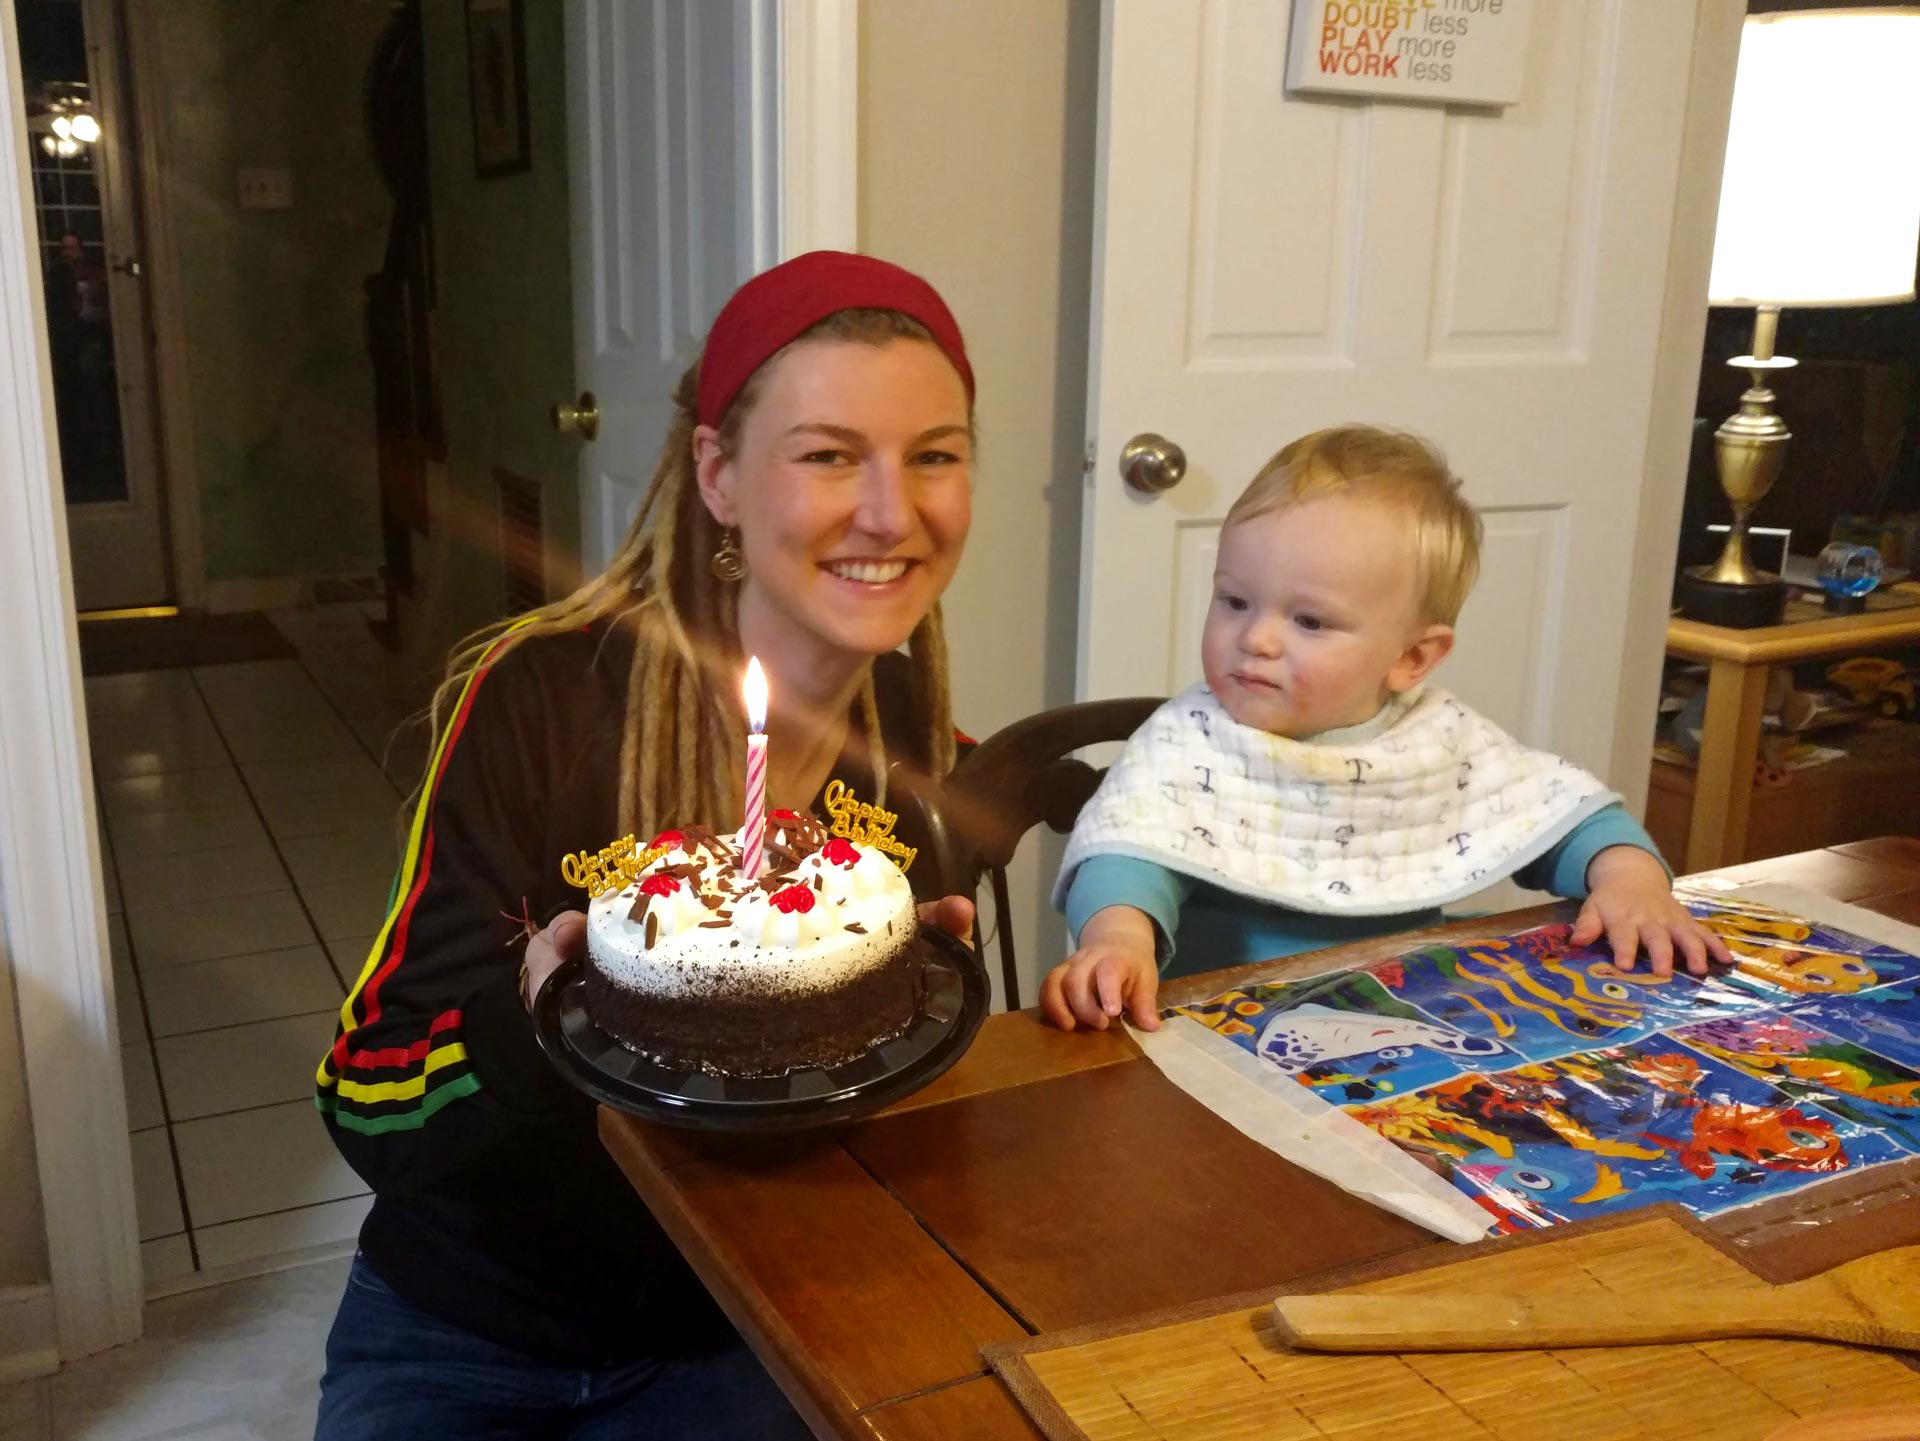 Rasta Girl With Birthday Cake And Baby Looking At It In Richmond VA